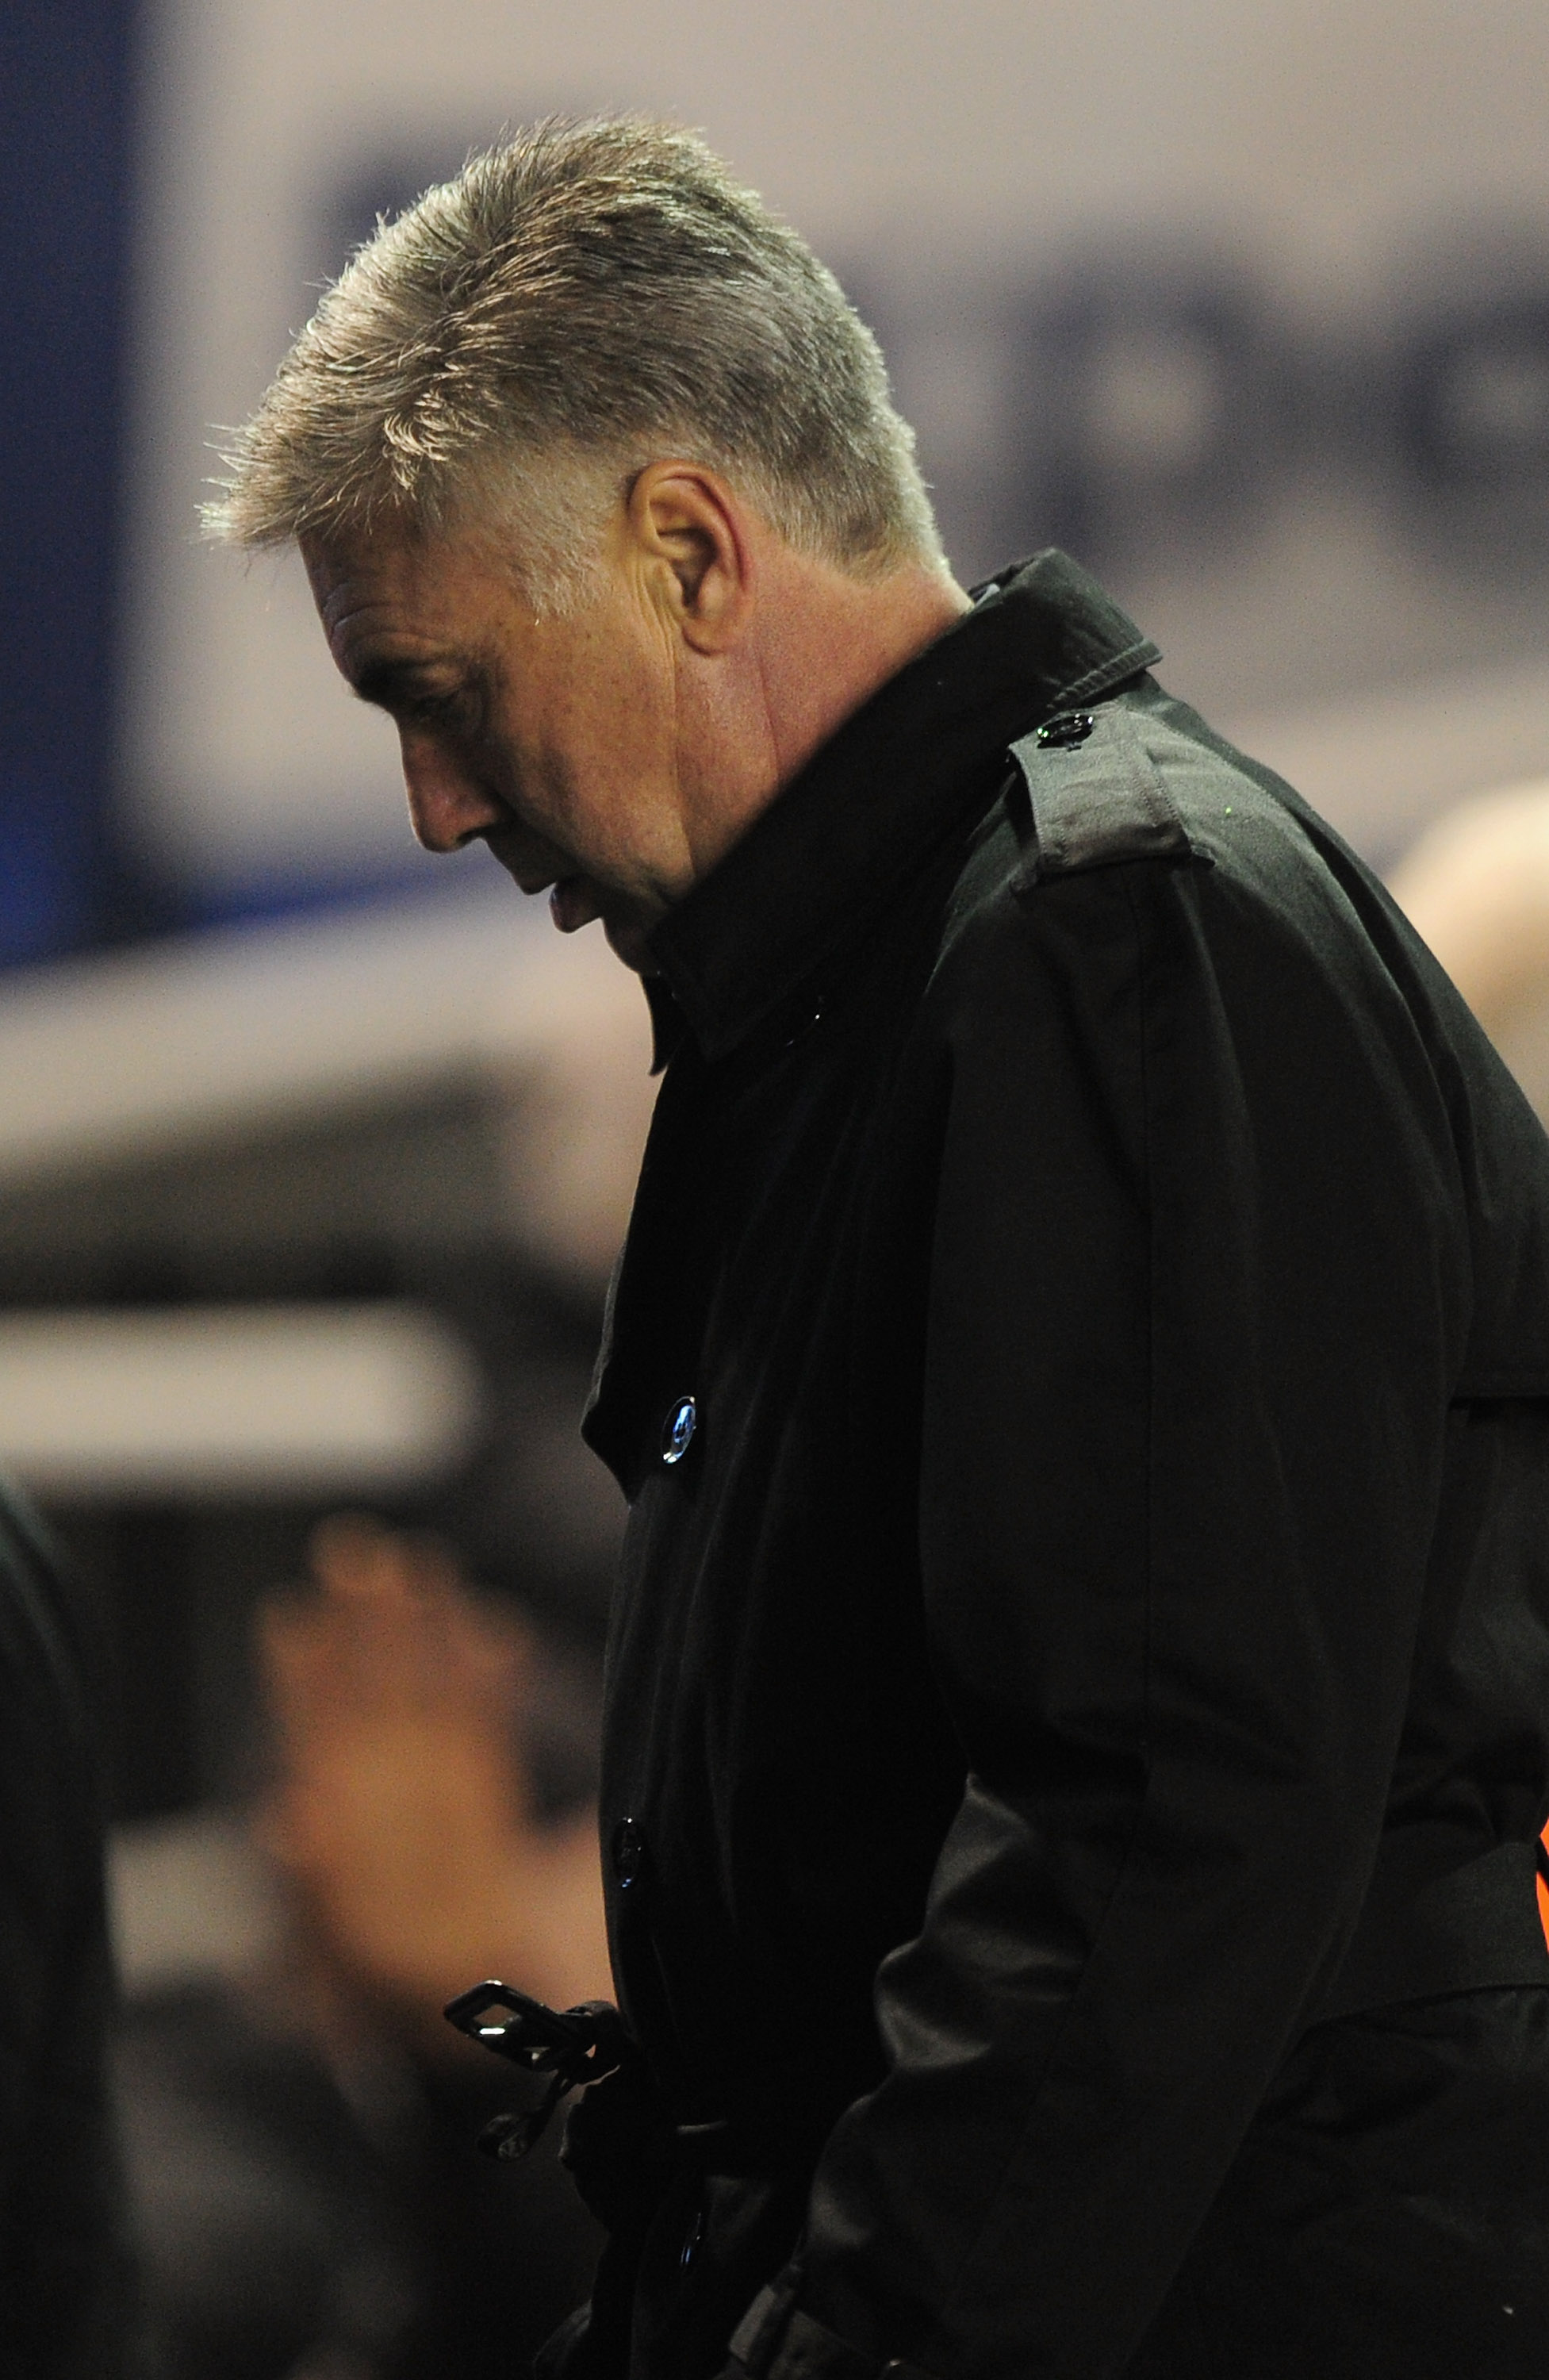 BIRMINGHAM, ENGLAND - NOVEMBER 20:  Chelsea manager Carlo Ancelotti is dejected after defeat in the Barclays Premier League match between Birmingham City and Chelsea at St Andrews on November 20, 2010 in Birmingham, England.  (Photo by Shaun Botterill/Get